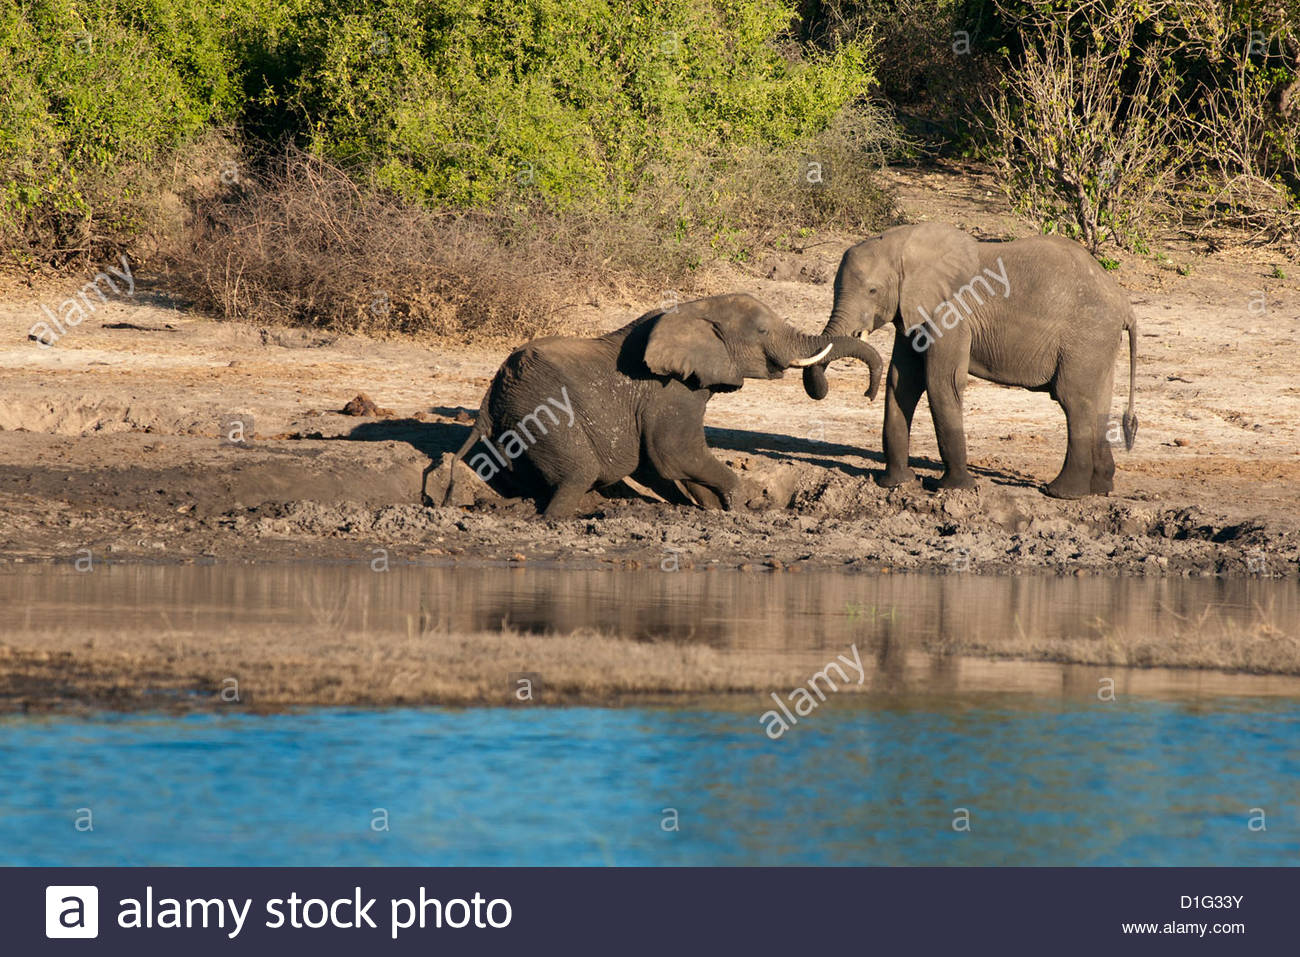 Elephants on the banks of the Chobe River, Caprivi Strip, Namibia, Africa - Stock Image